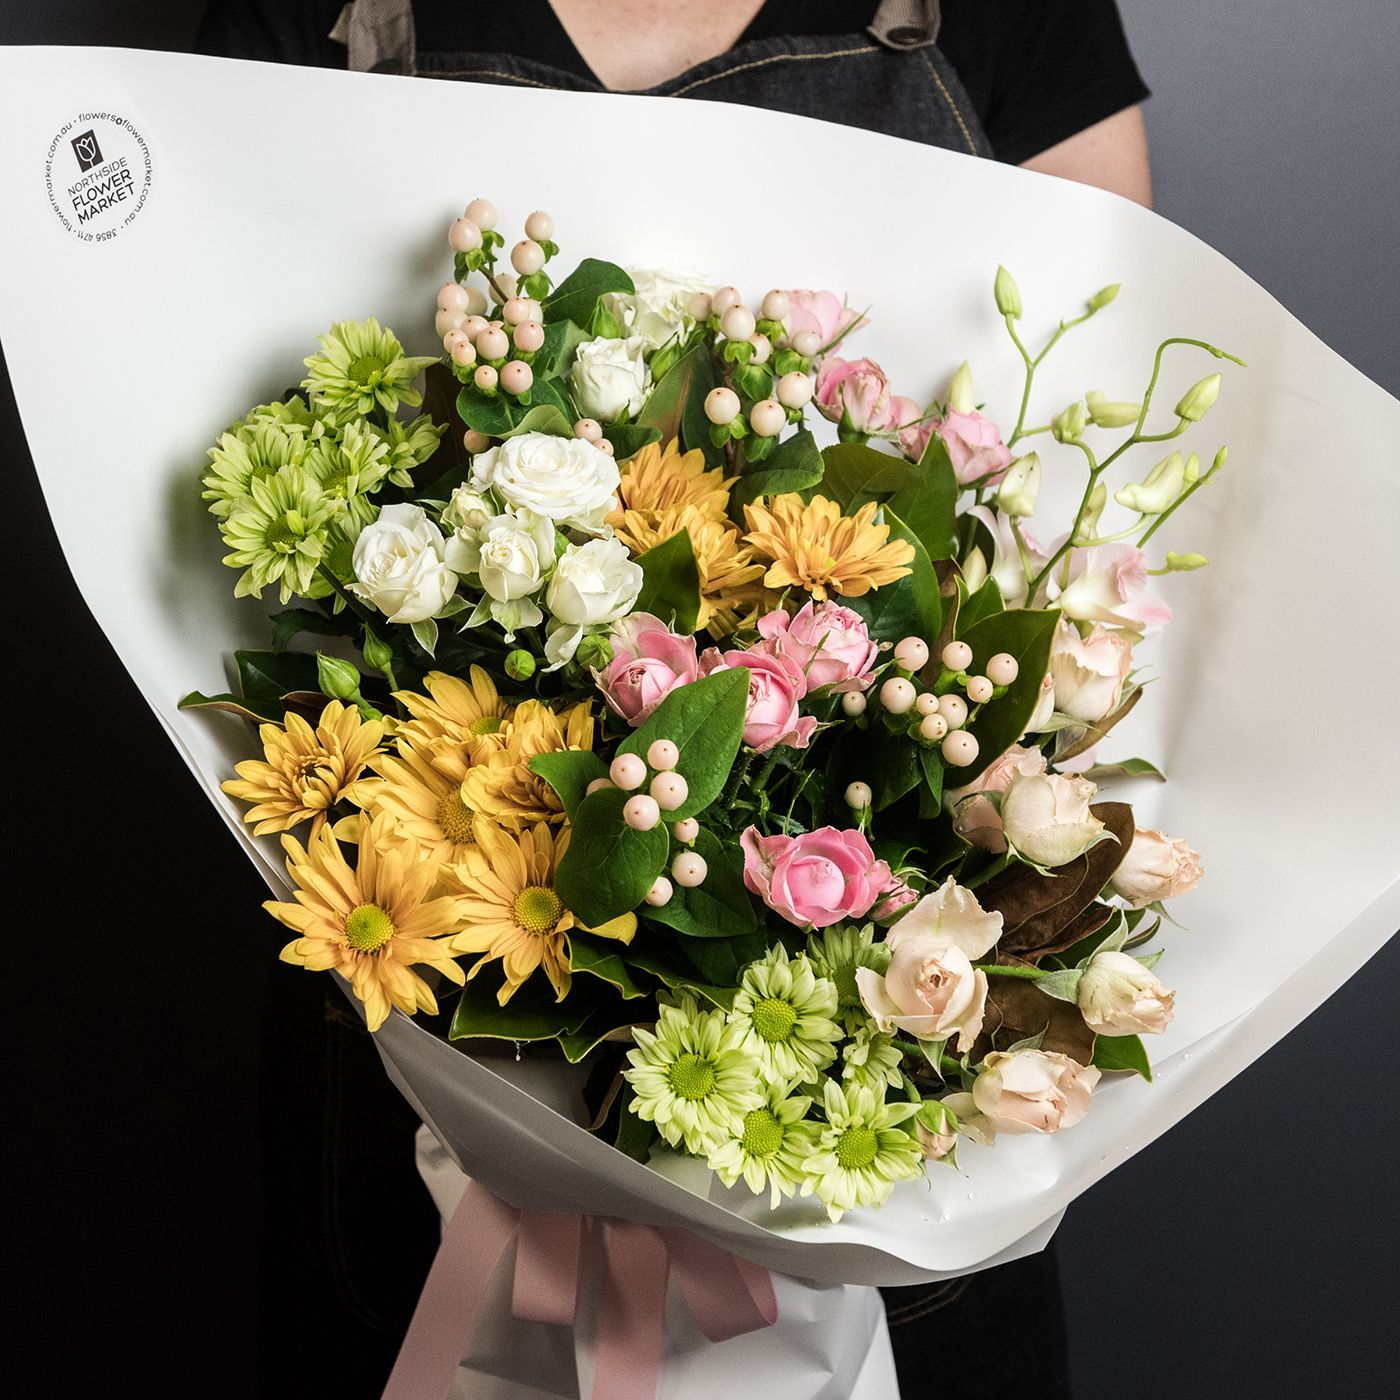 Happy Birthday To Everyone With Birthdays This Month Tag Your Friends To Give Them A Birthday Bouquet Hin Bouquet Arrangements Flower Market Birthday Bouquet